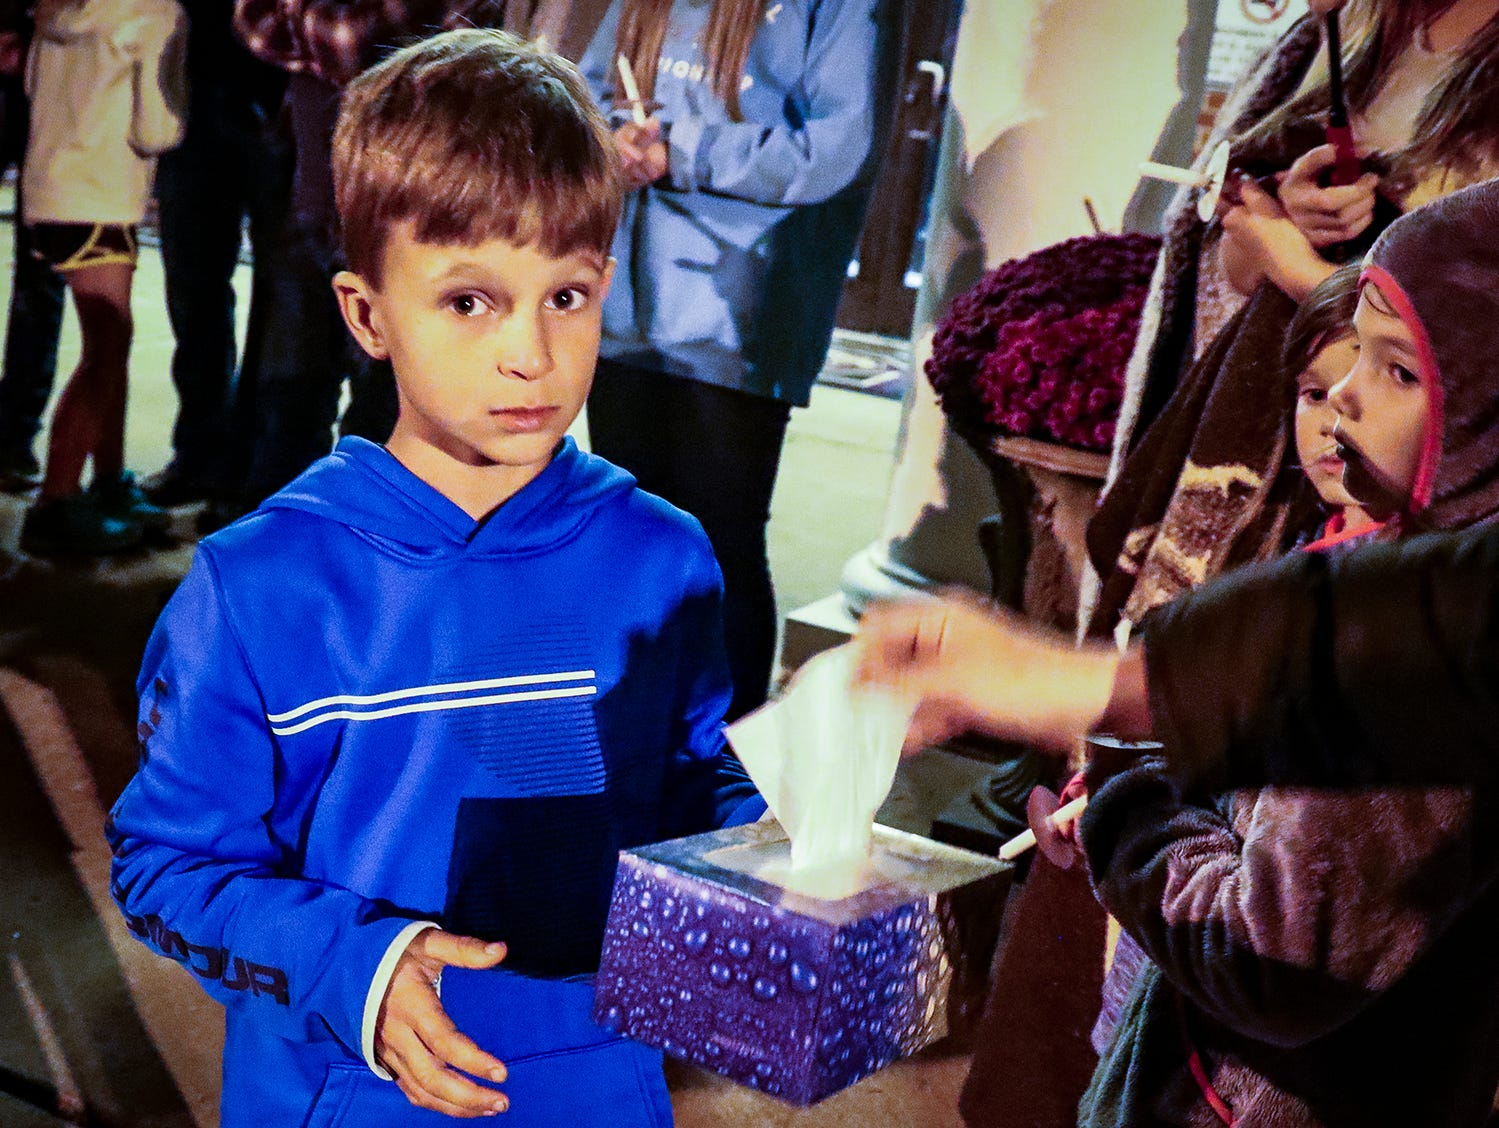 Benton Fox, a third-grader at Eagleville School, hands out tissues to the crowd gathered for a vigil in memory of Angie Walker. Walker, 41, was killed in and EF-2 tornado in Christiana, Tenn., on Tuesday, Nov. 6, 2018.